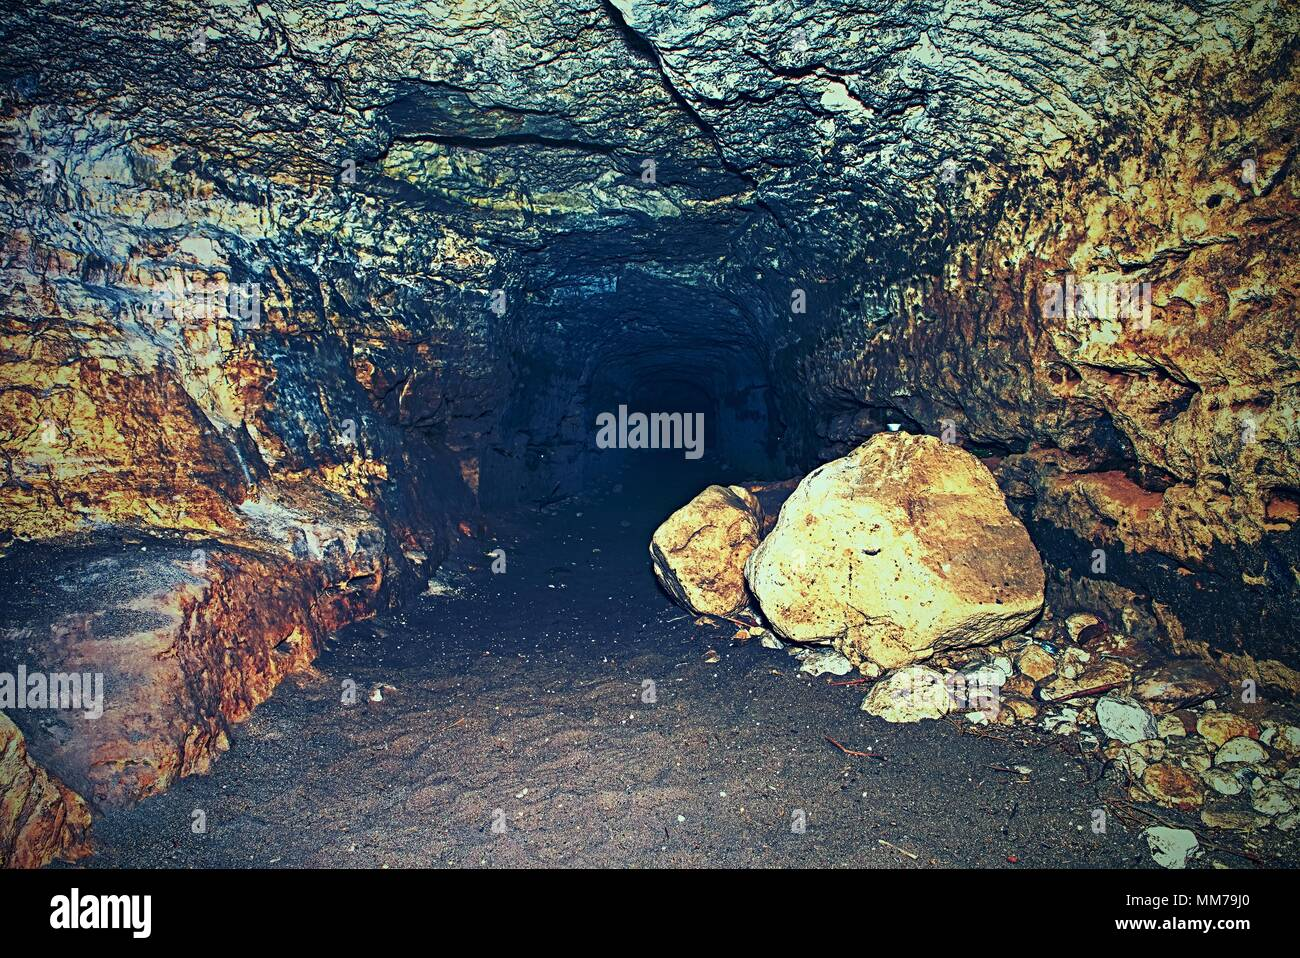 View into an empty medieval catacomb. Tunnel excavated in orange sandstone rock with sand and stones on the floor. - Stock Image